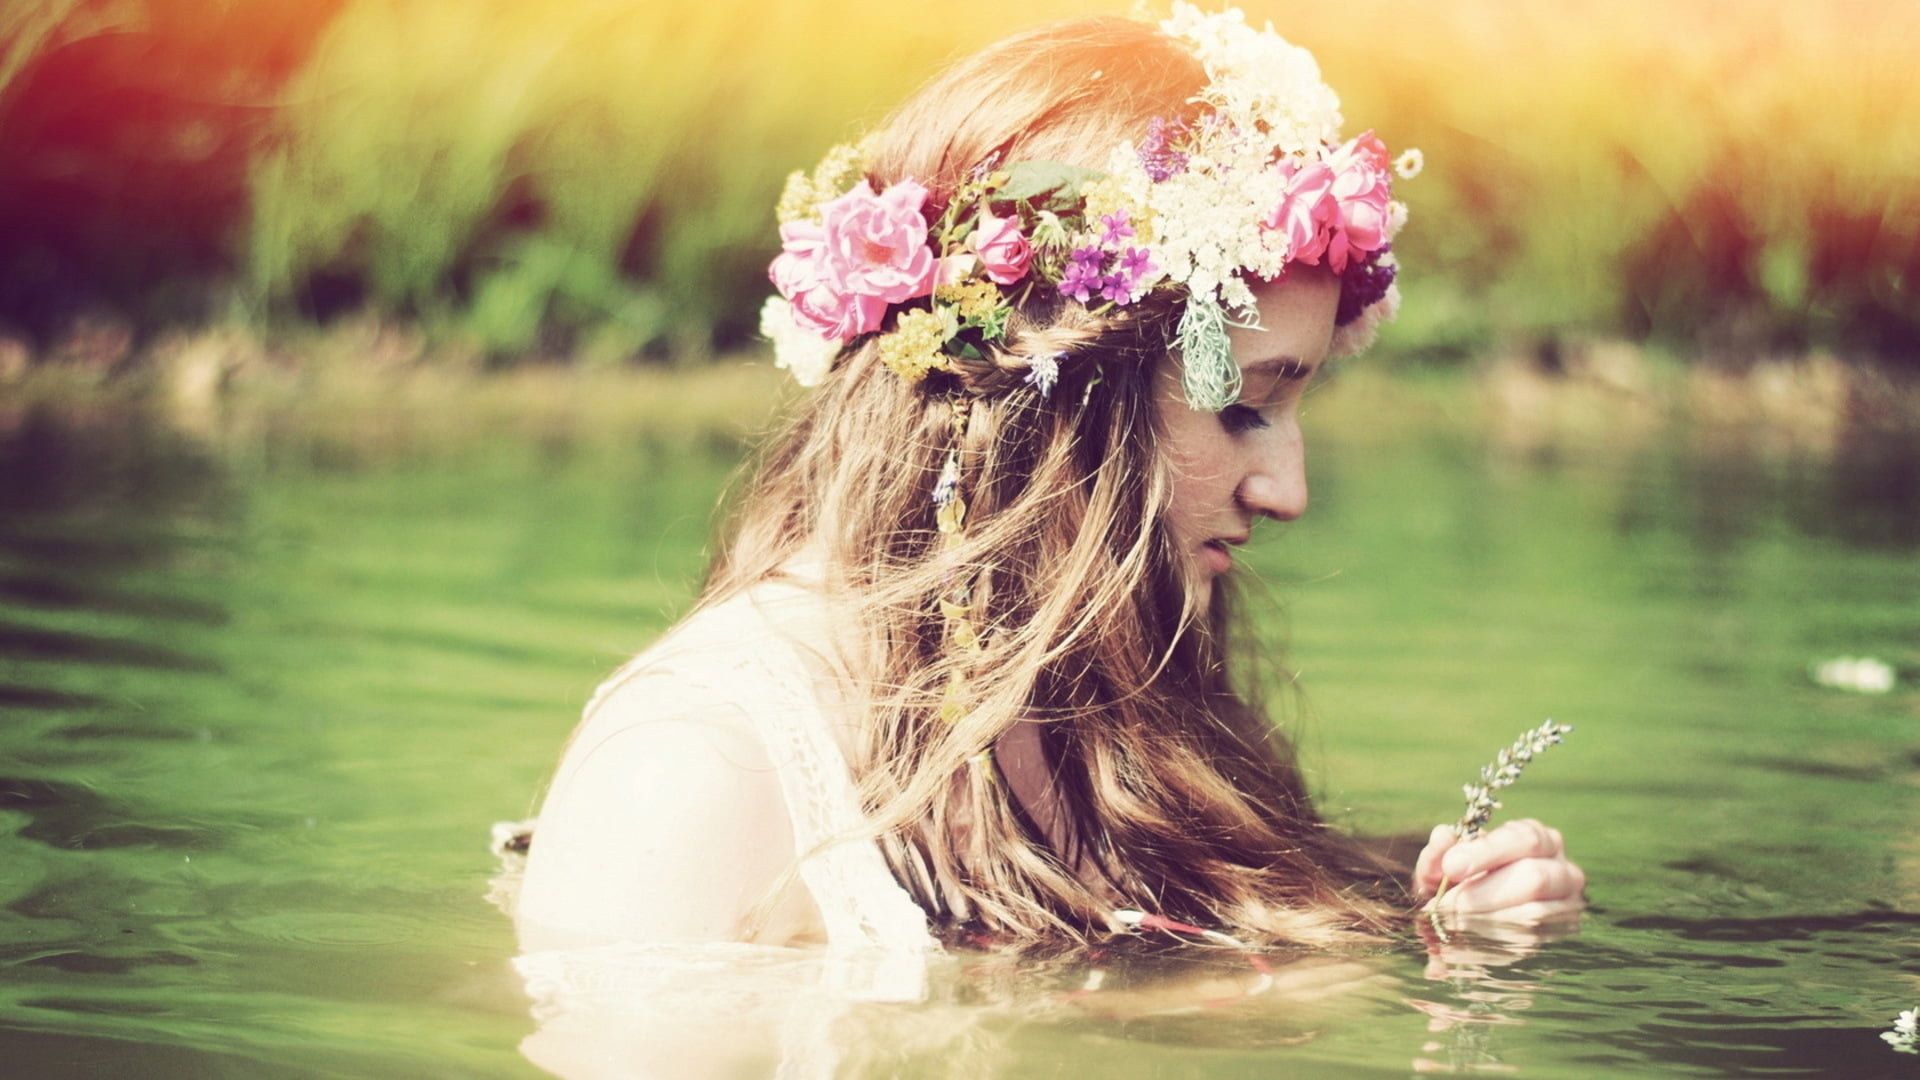 Girl With Flower In Water , HD Wallpaper & Backgrounds